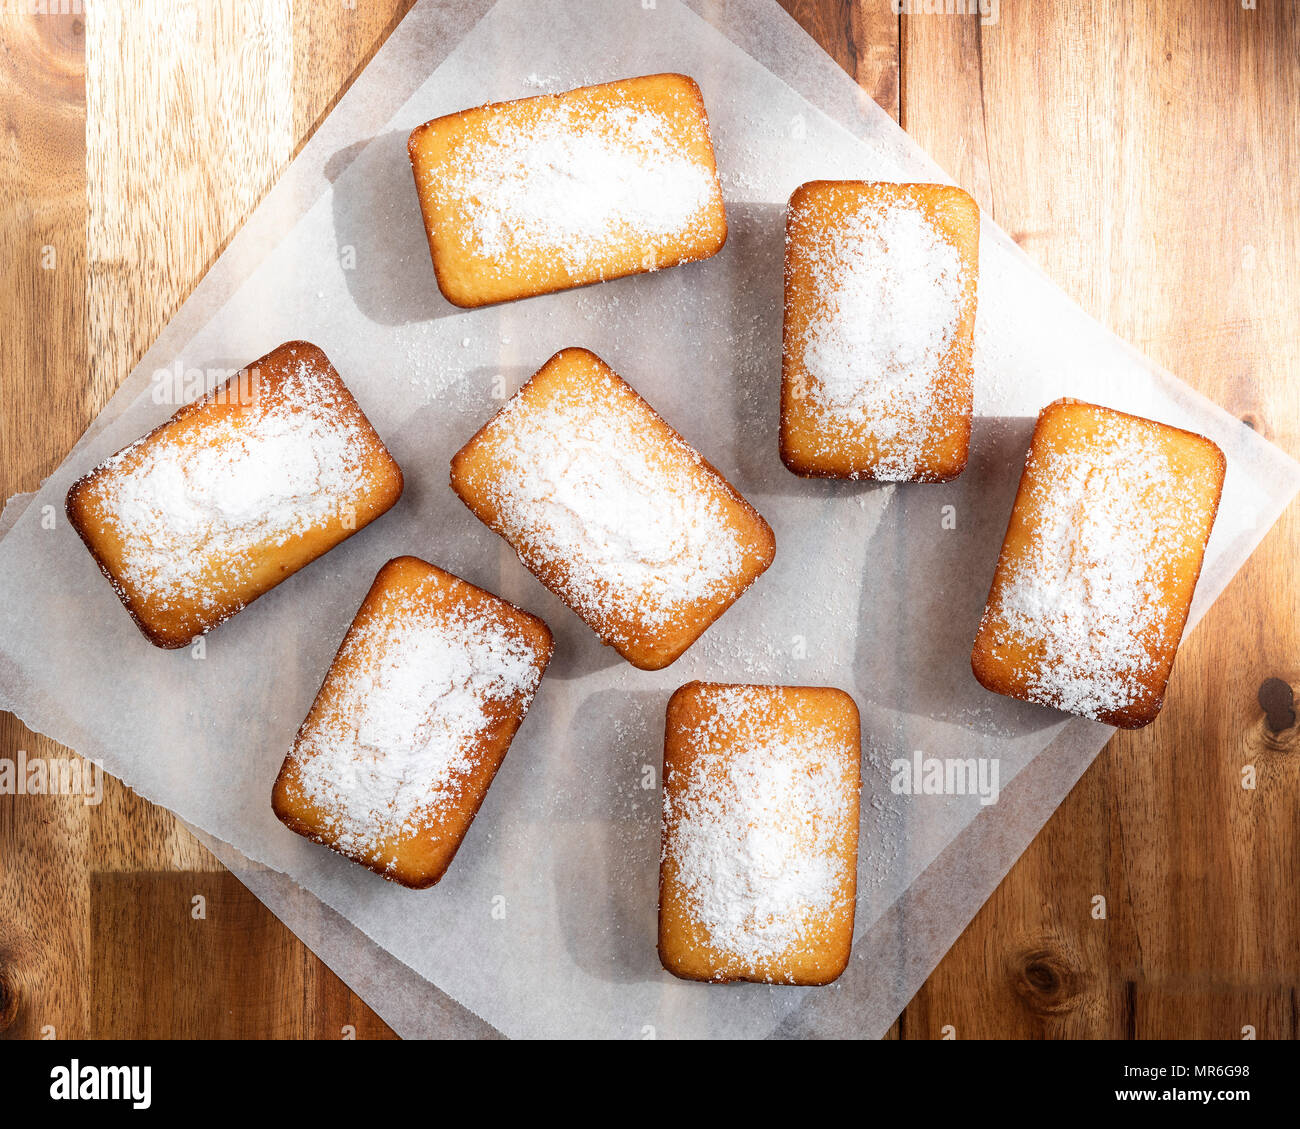 Small orange loaf cakes dusted with icing sugar on baking paper. - Stock Image